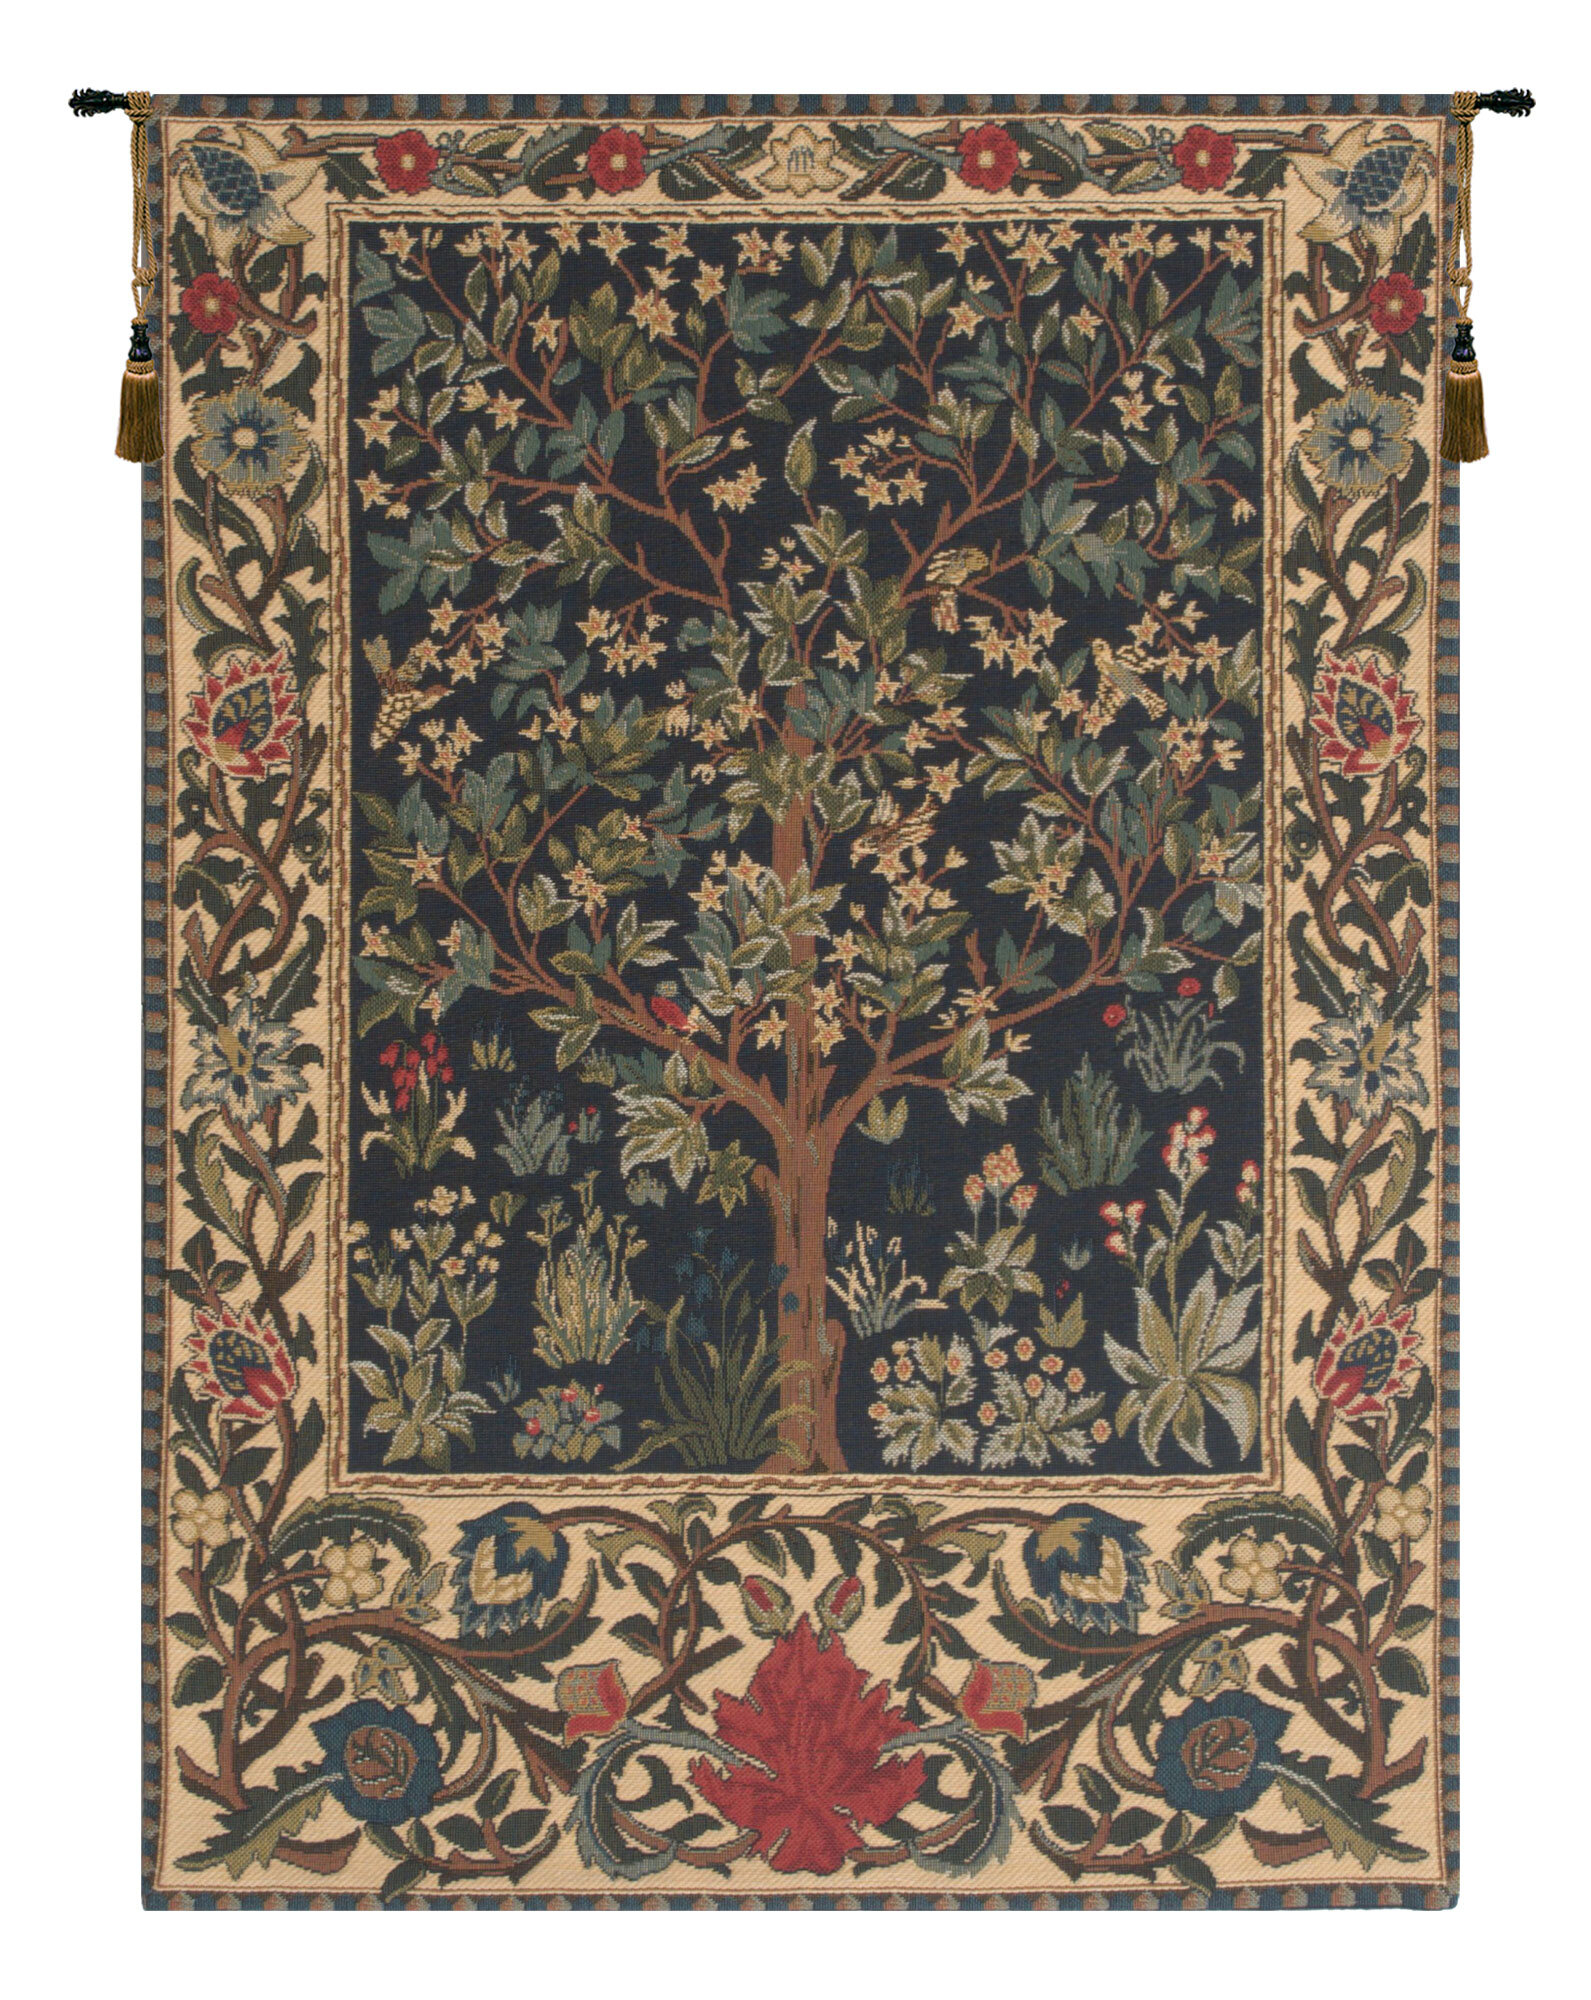 40 X 60 Art Tapestries You'll Love In 2021 | Wayfair With 2018 Blended Fabric Pheasant And Doe European Tapestries Wall Hangings (View 2 of 20)